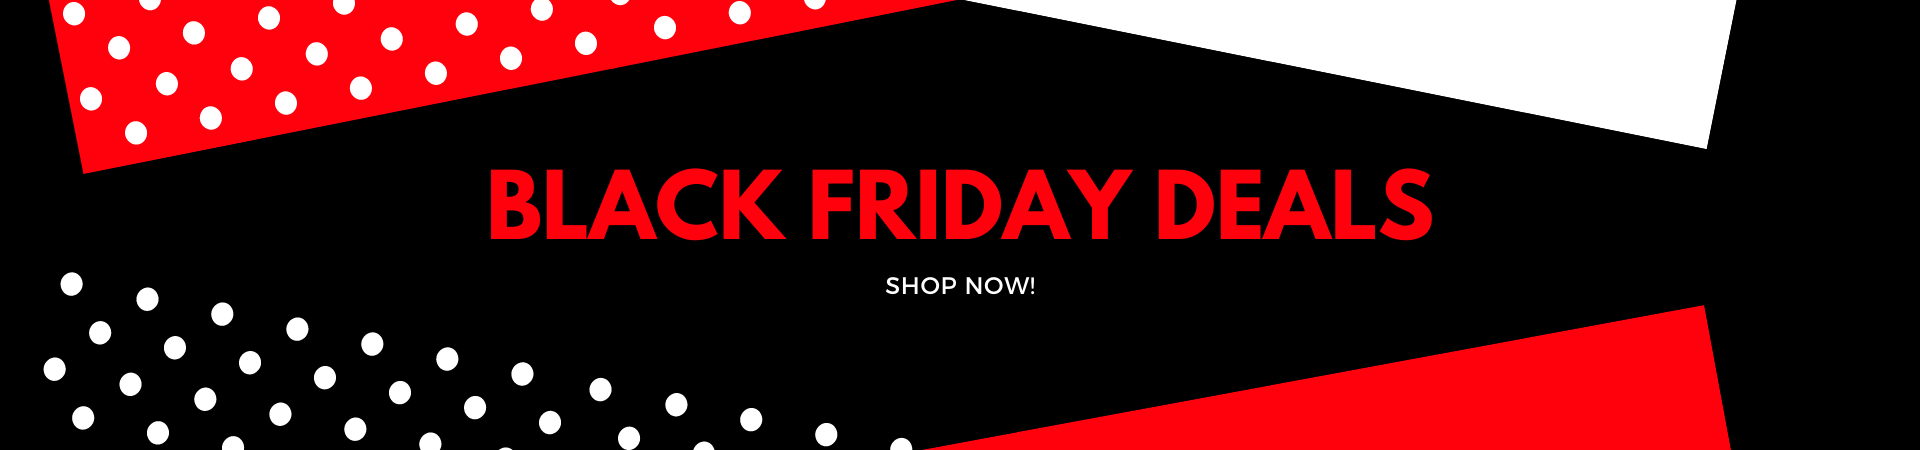 Black Friday Deals from Business Furniture Direct Limited